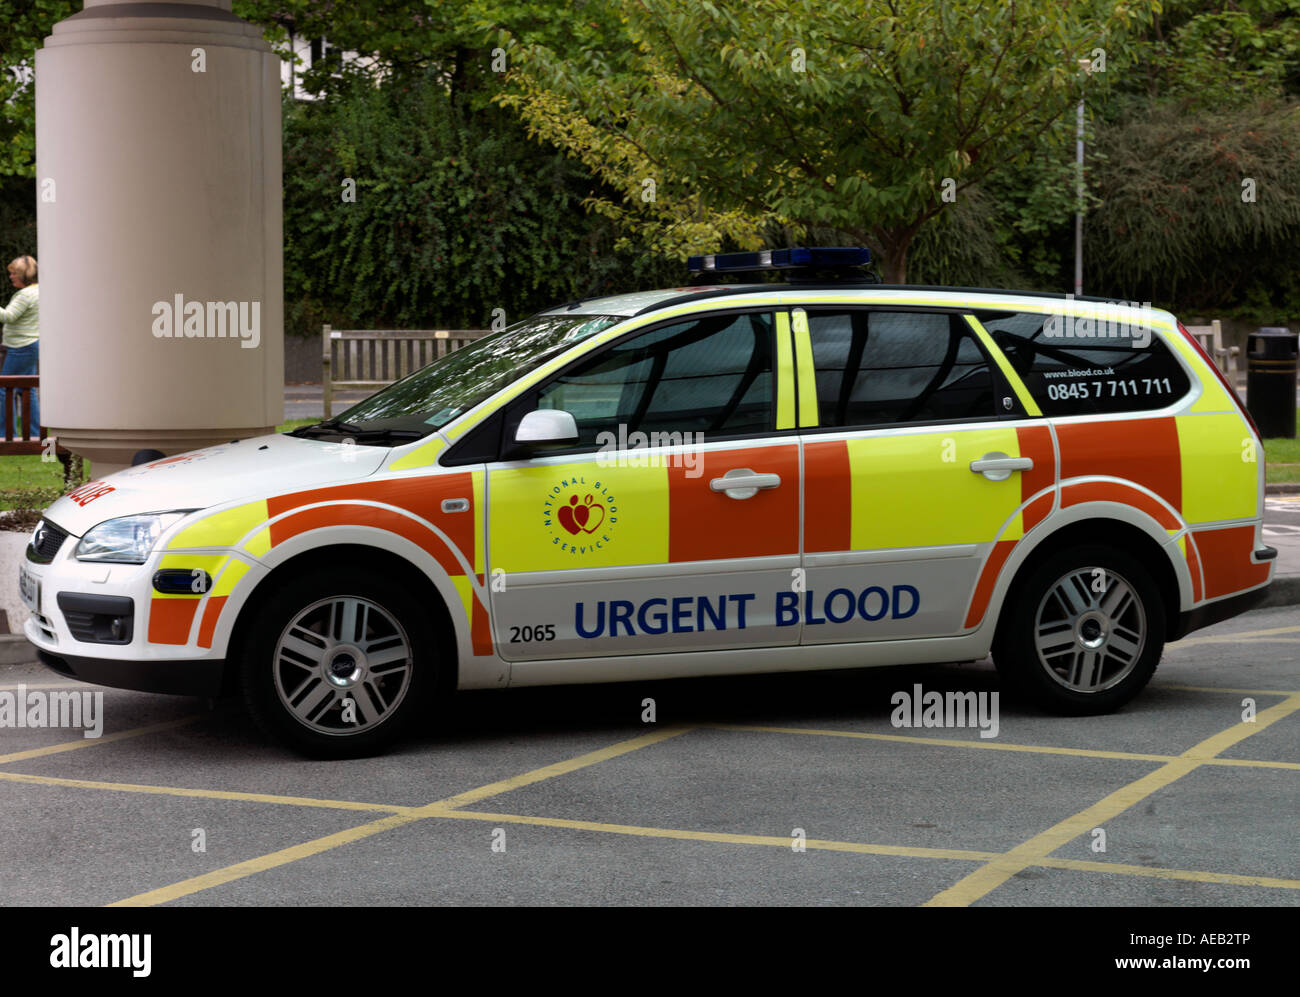 National Blood Service Urgent Blood Ambulance Stock Photo